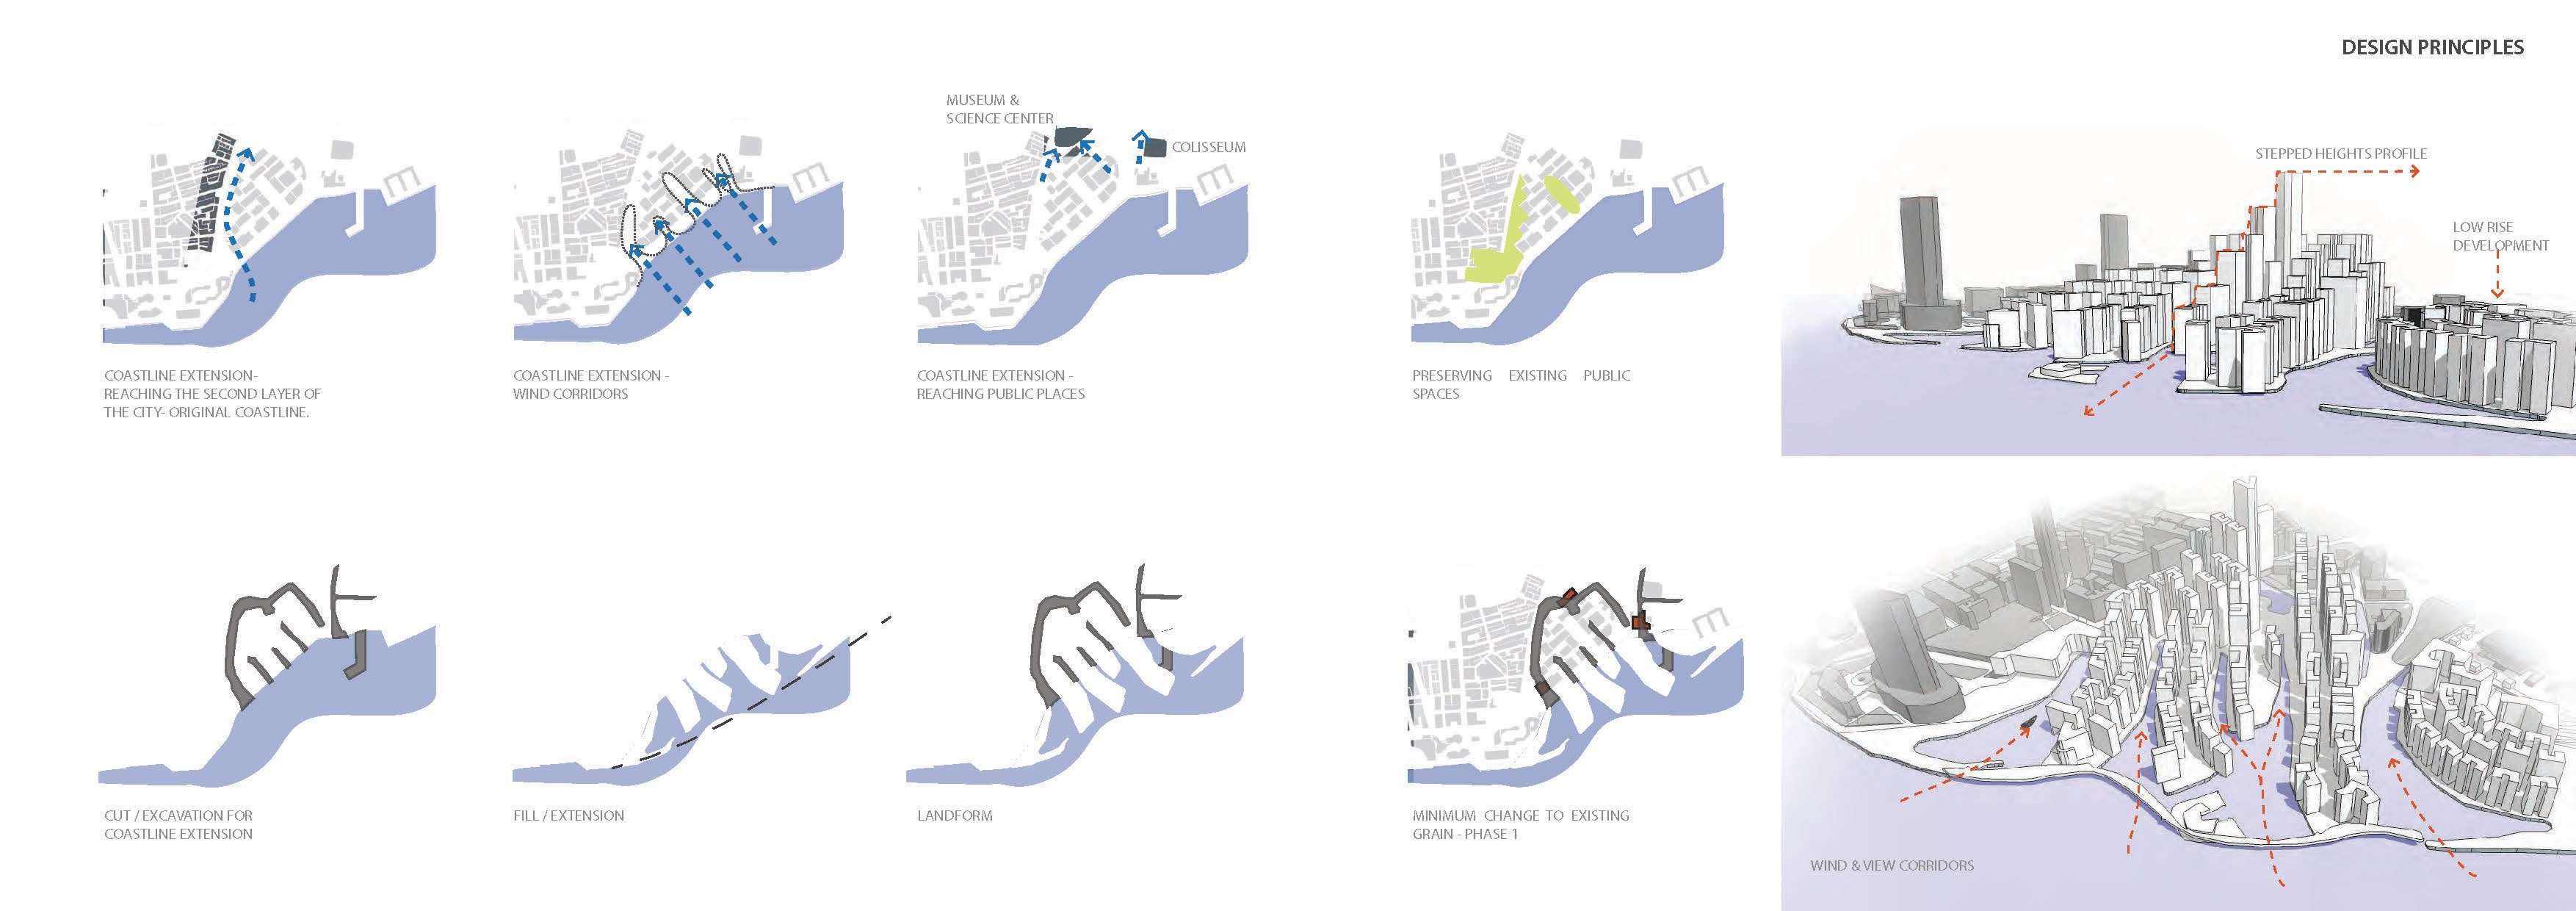 global metro urbanism- coastal defibrillation_Page_09